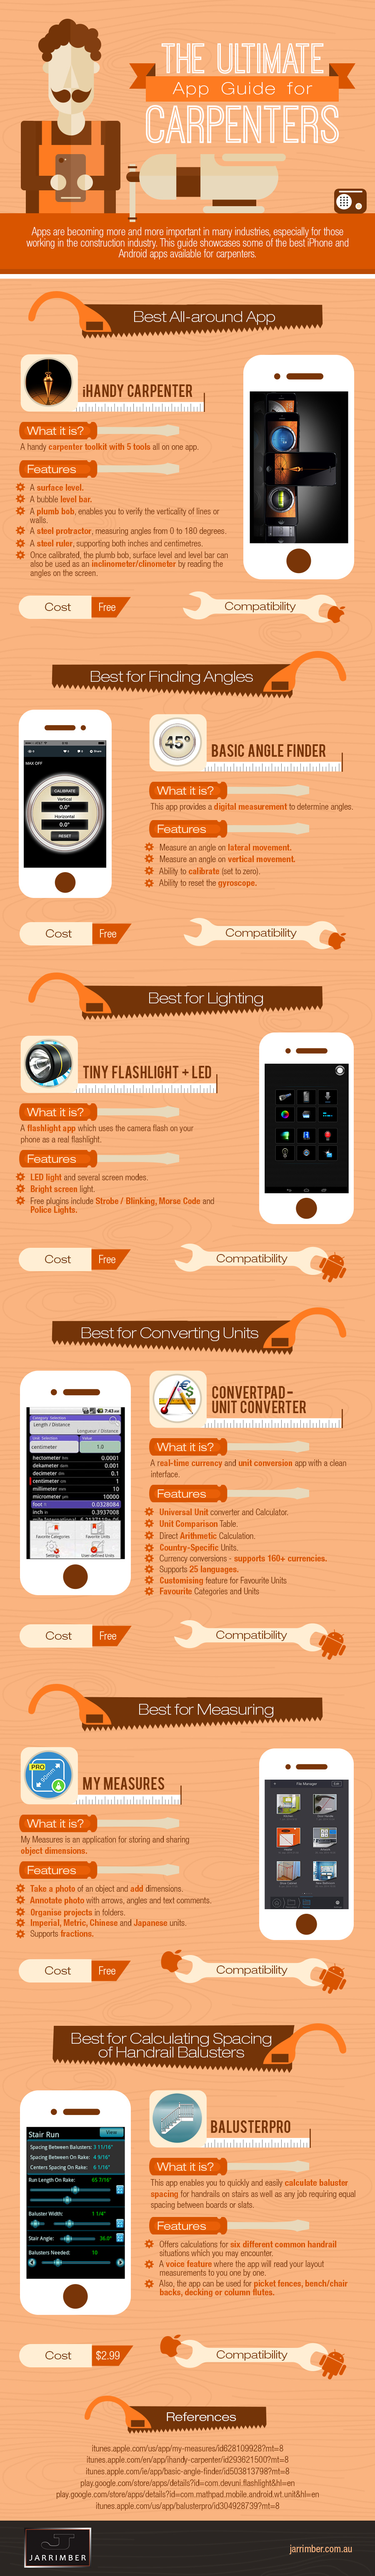 The-Ultimate-App-Guide-for-Carpenters-Infographic